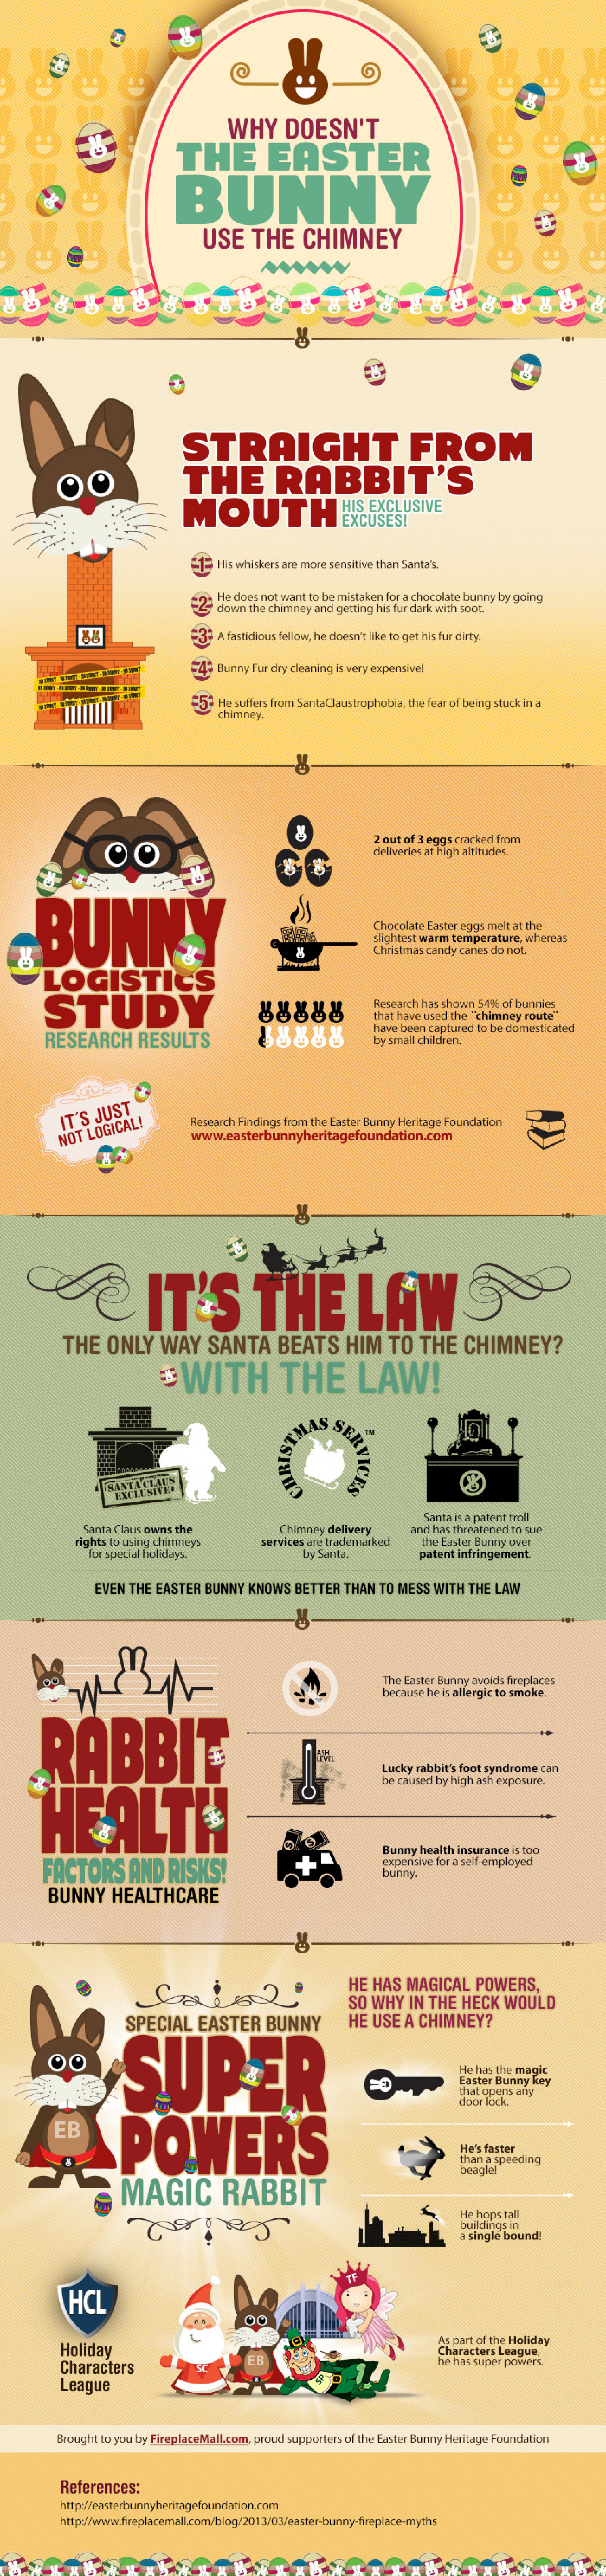 Why doesn't the Easter Bunny use the Chimney Infographic